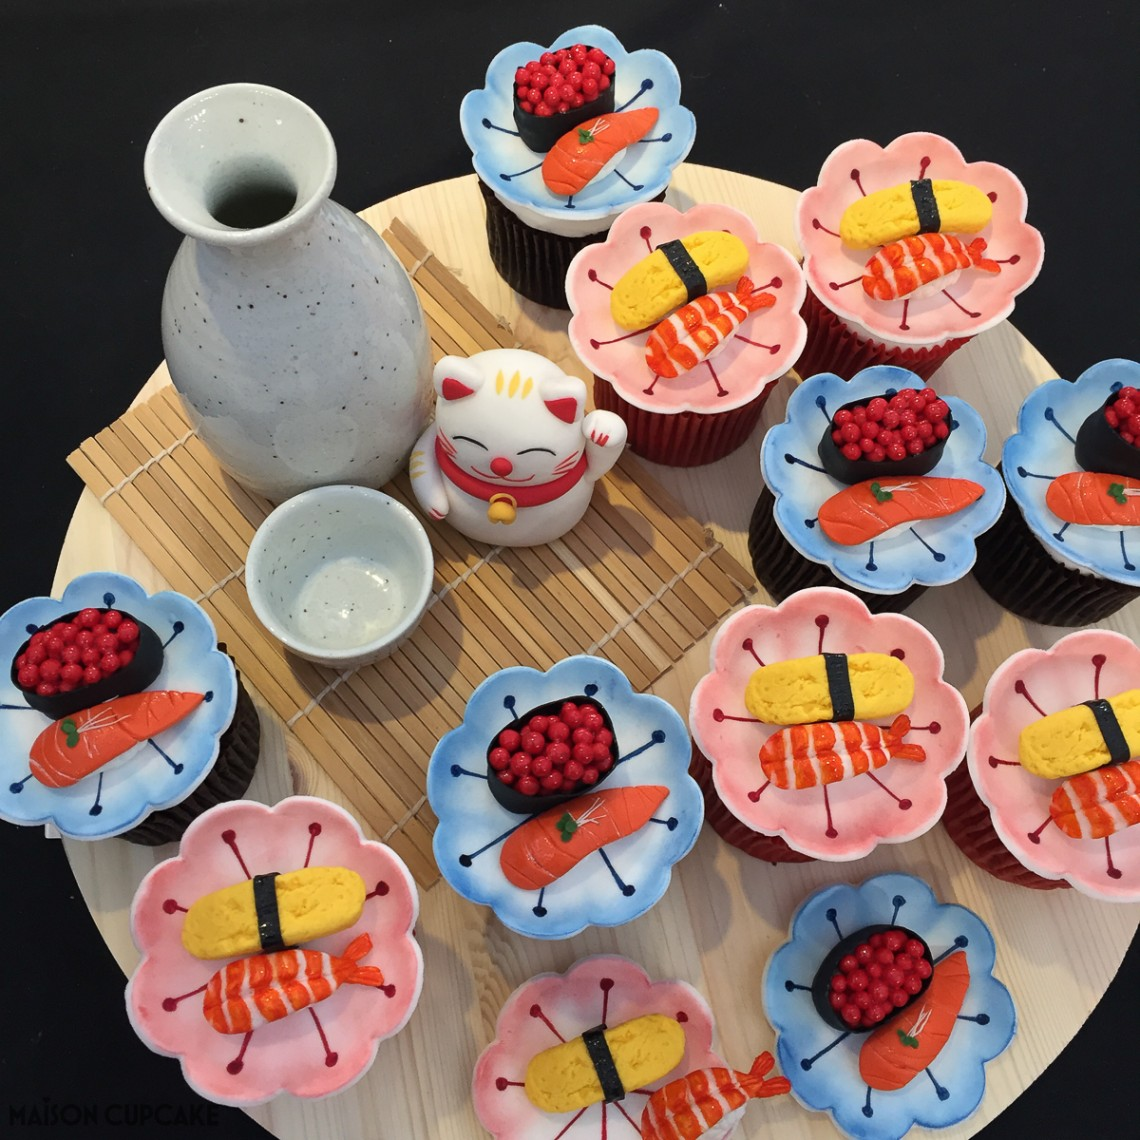 Sushi Cupcakes by Hye Eun Lee